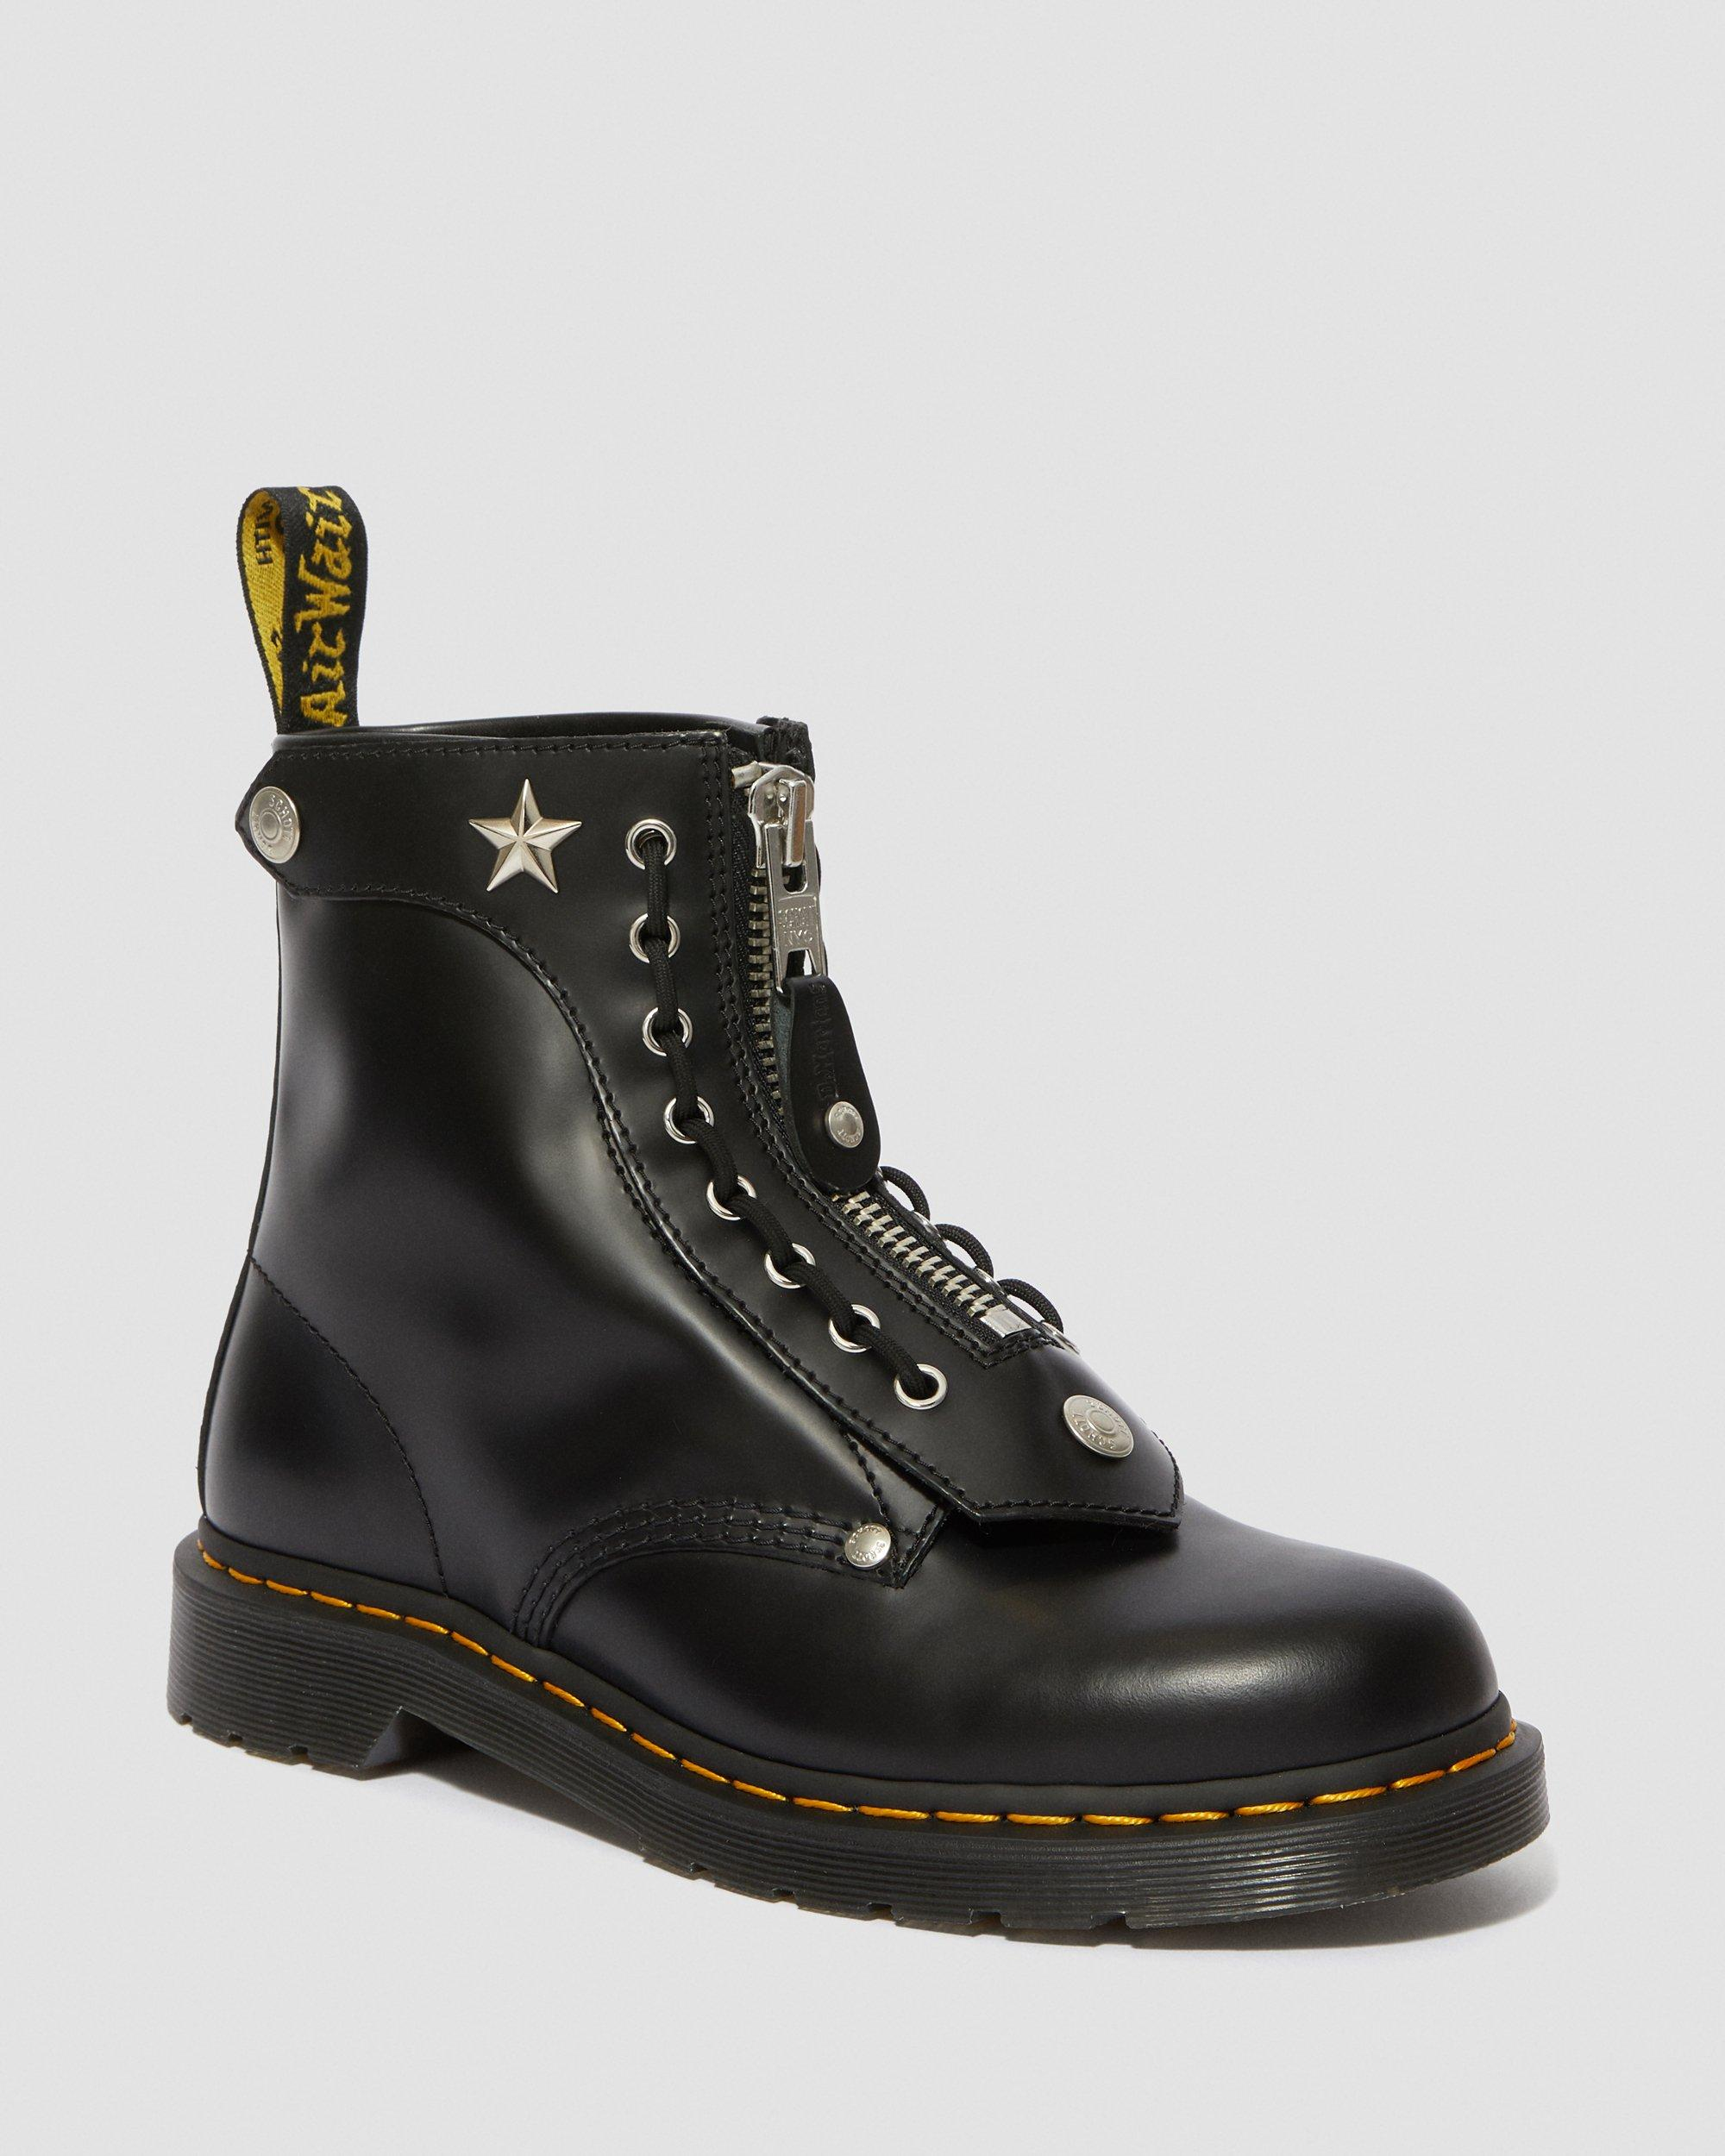 Schott NYC Collaboration | Dr. Martens France